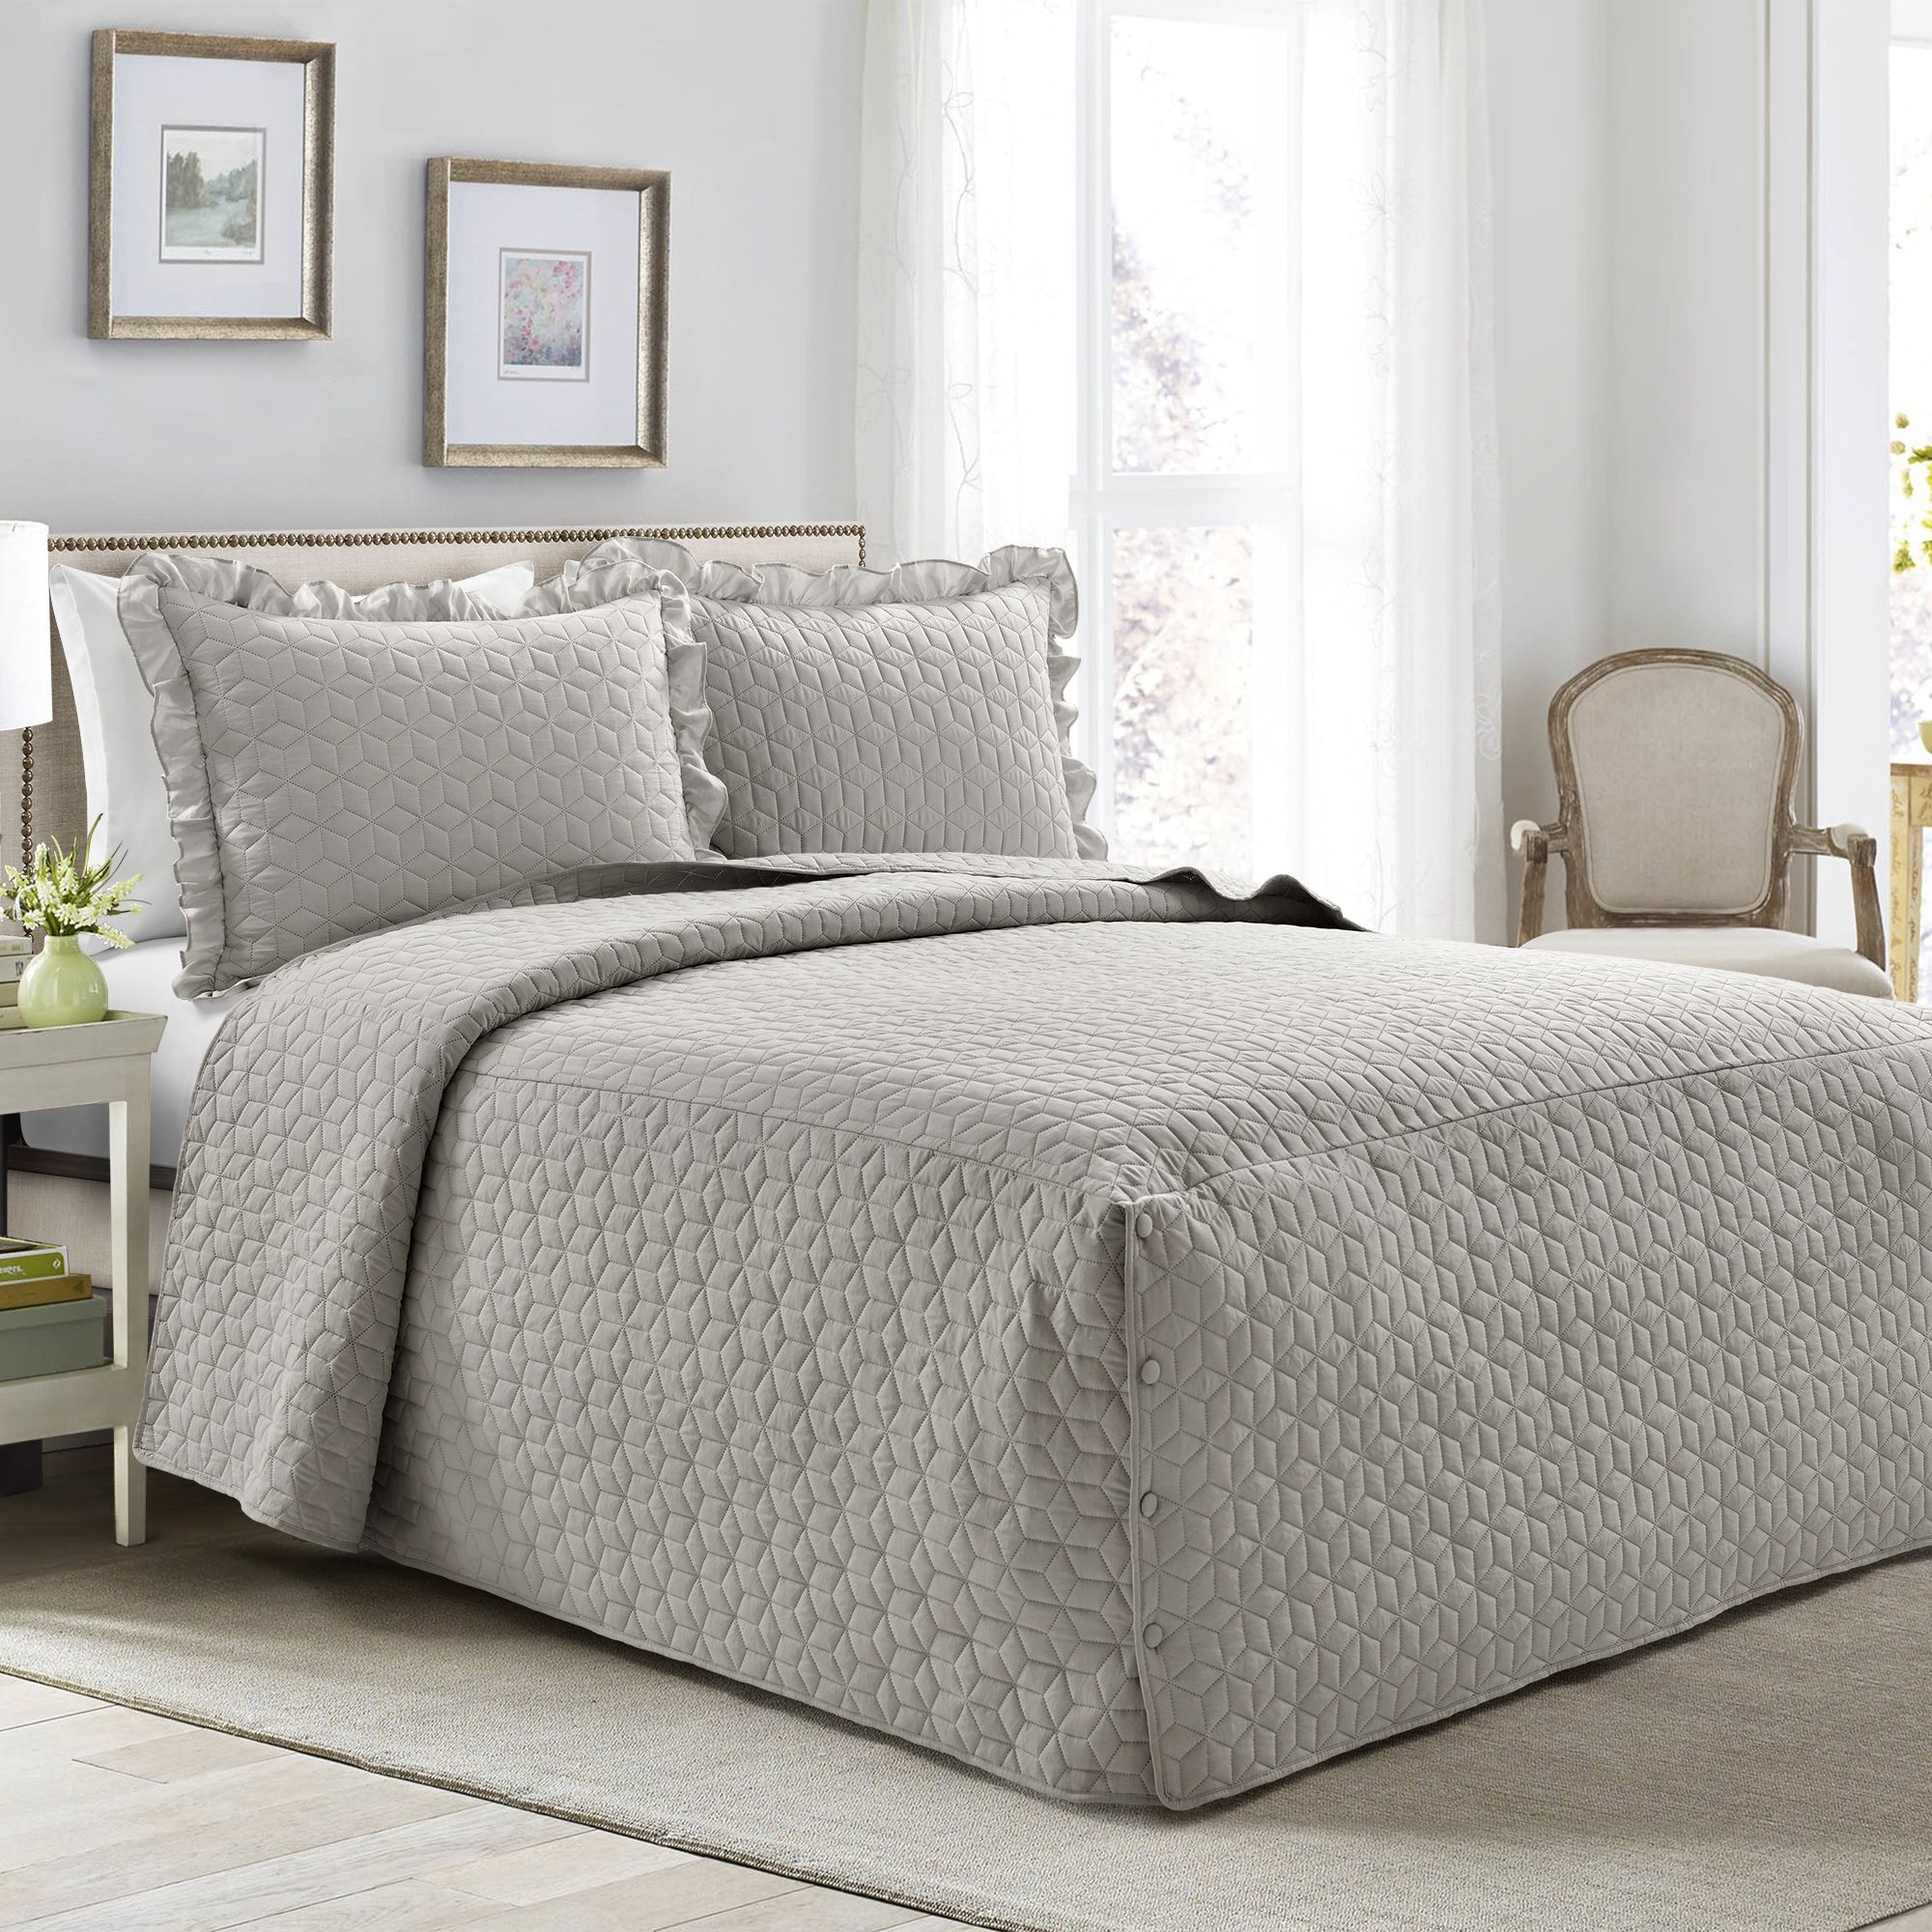 French Country Geo Ruffle Skirt 3 Piece Bedspread Set in